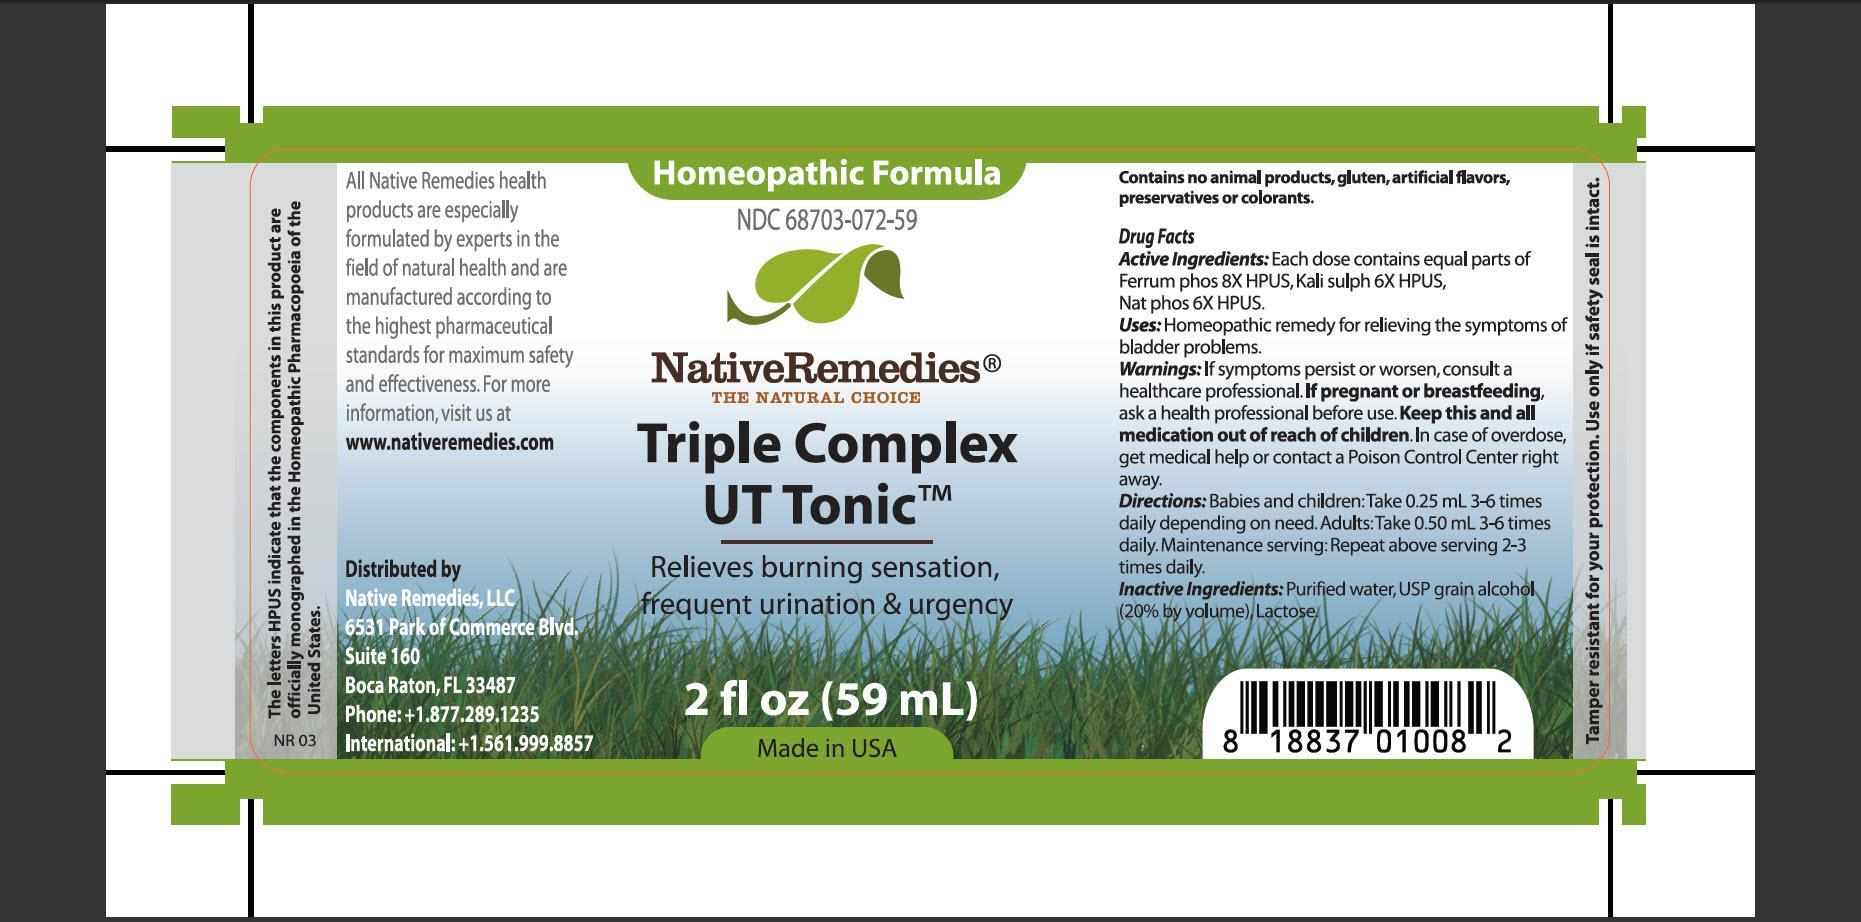 Triple Complex Ut Tonic (Ferrum Phos, Kali Sulp, Nat Phos) Tincture [Native Remedies, Llc]